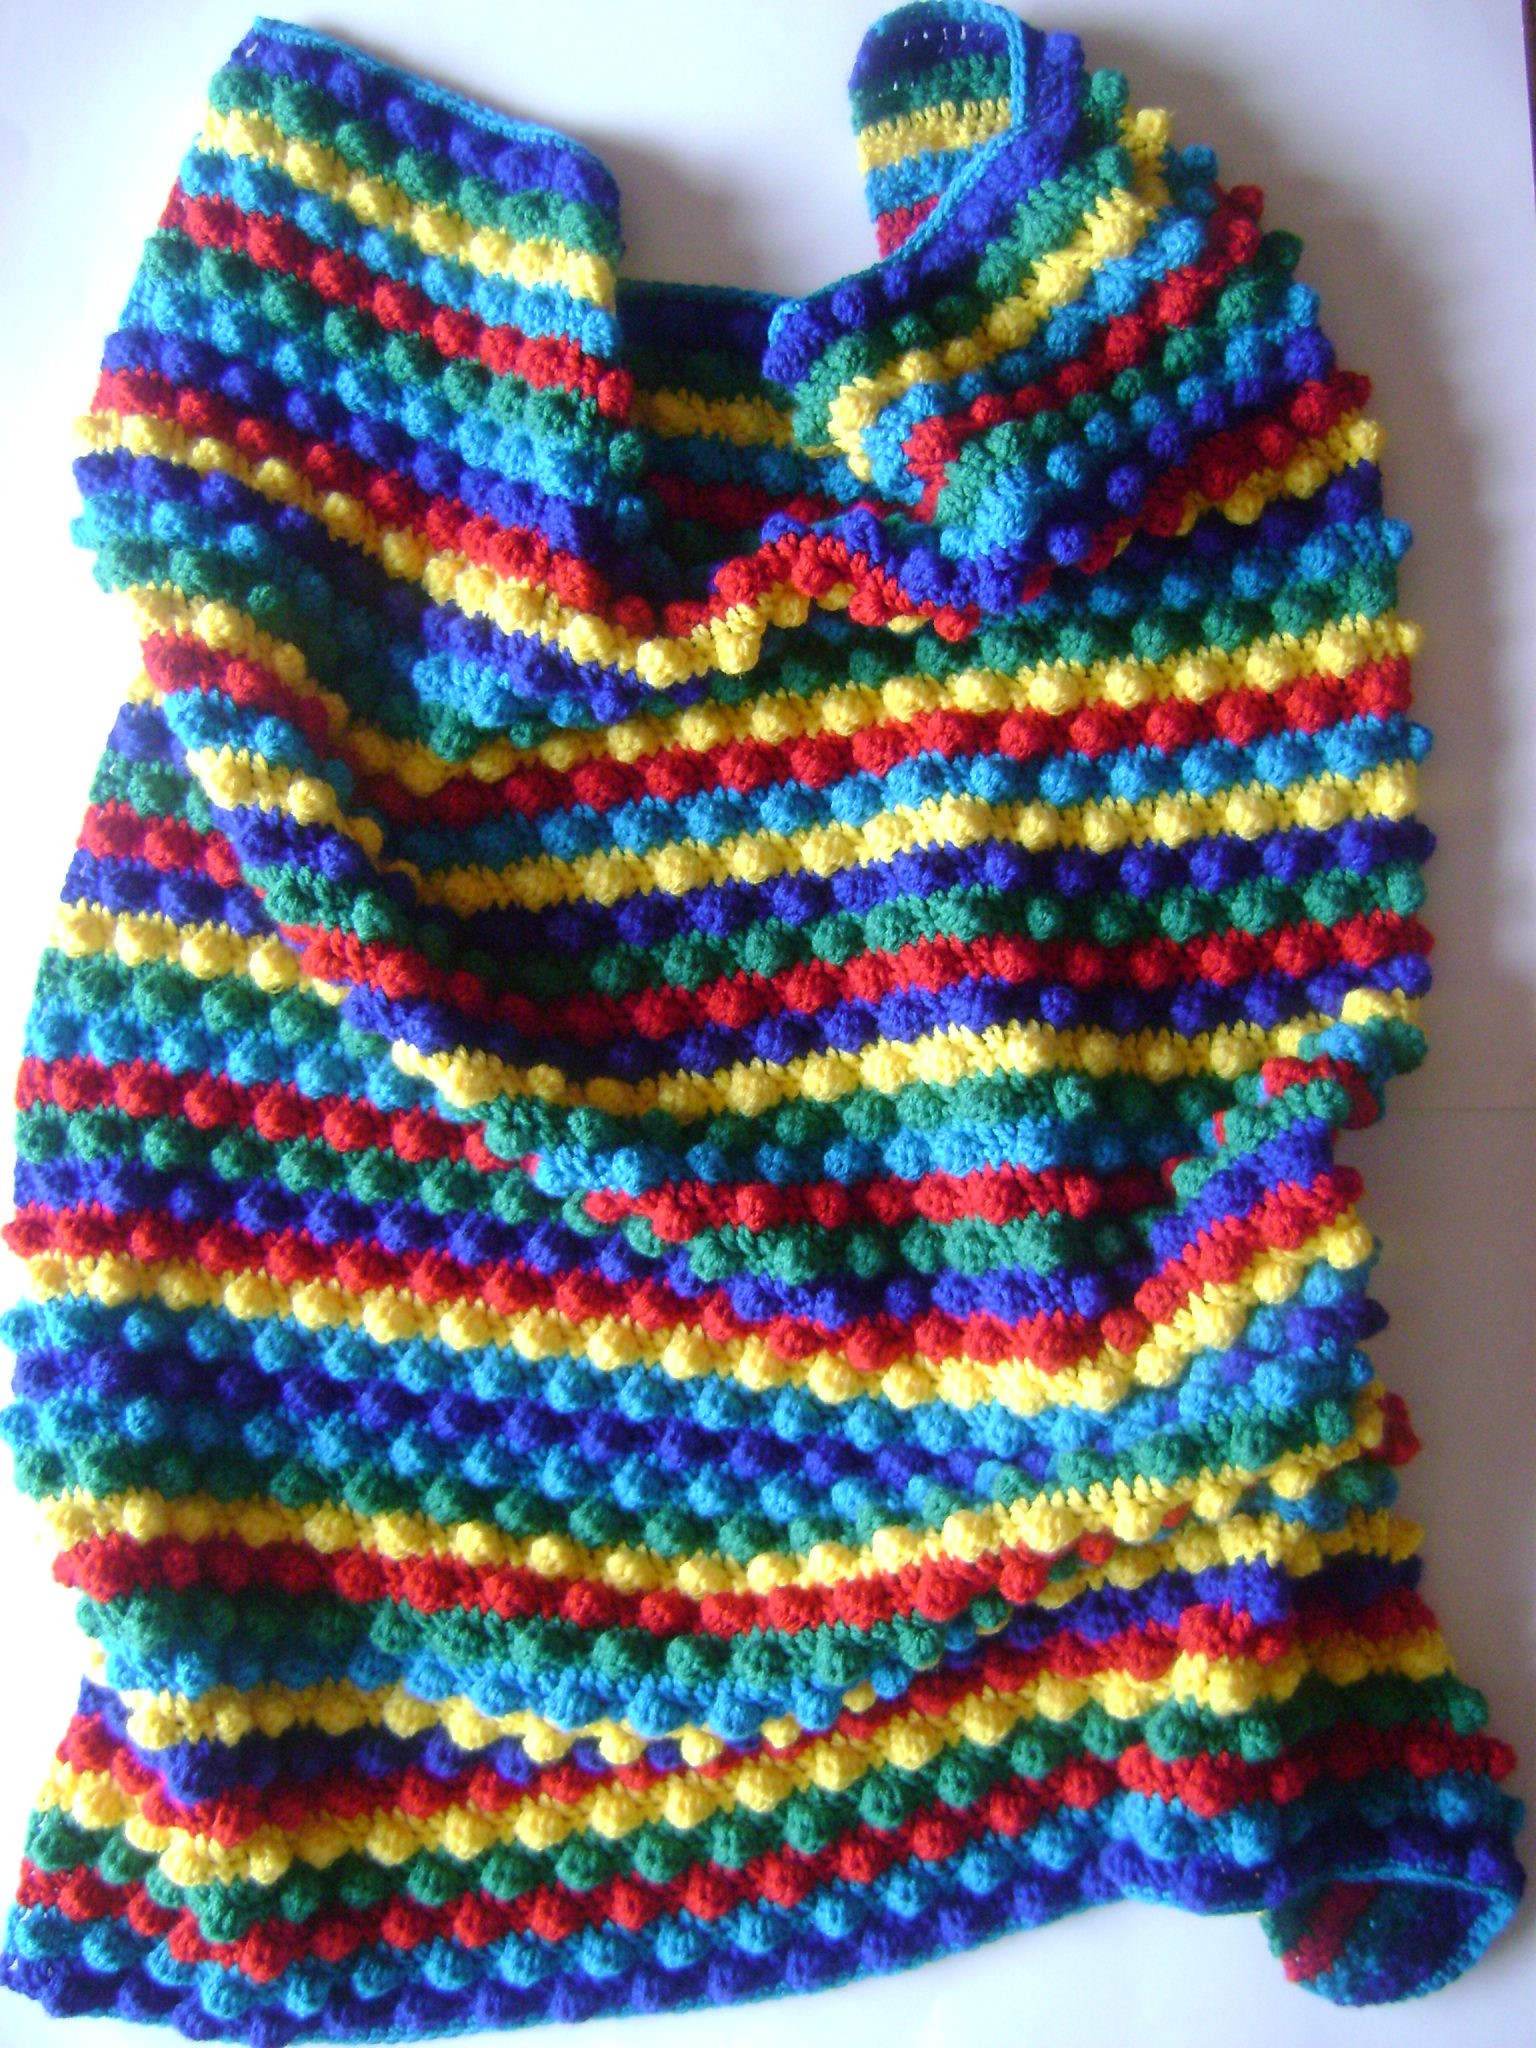 Order your own Blackberry Striped Baby Blanket